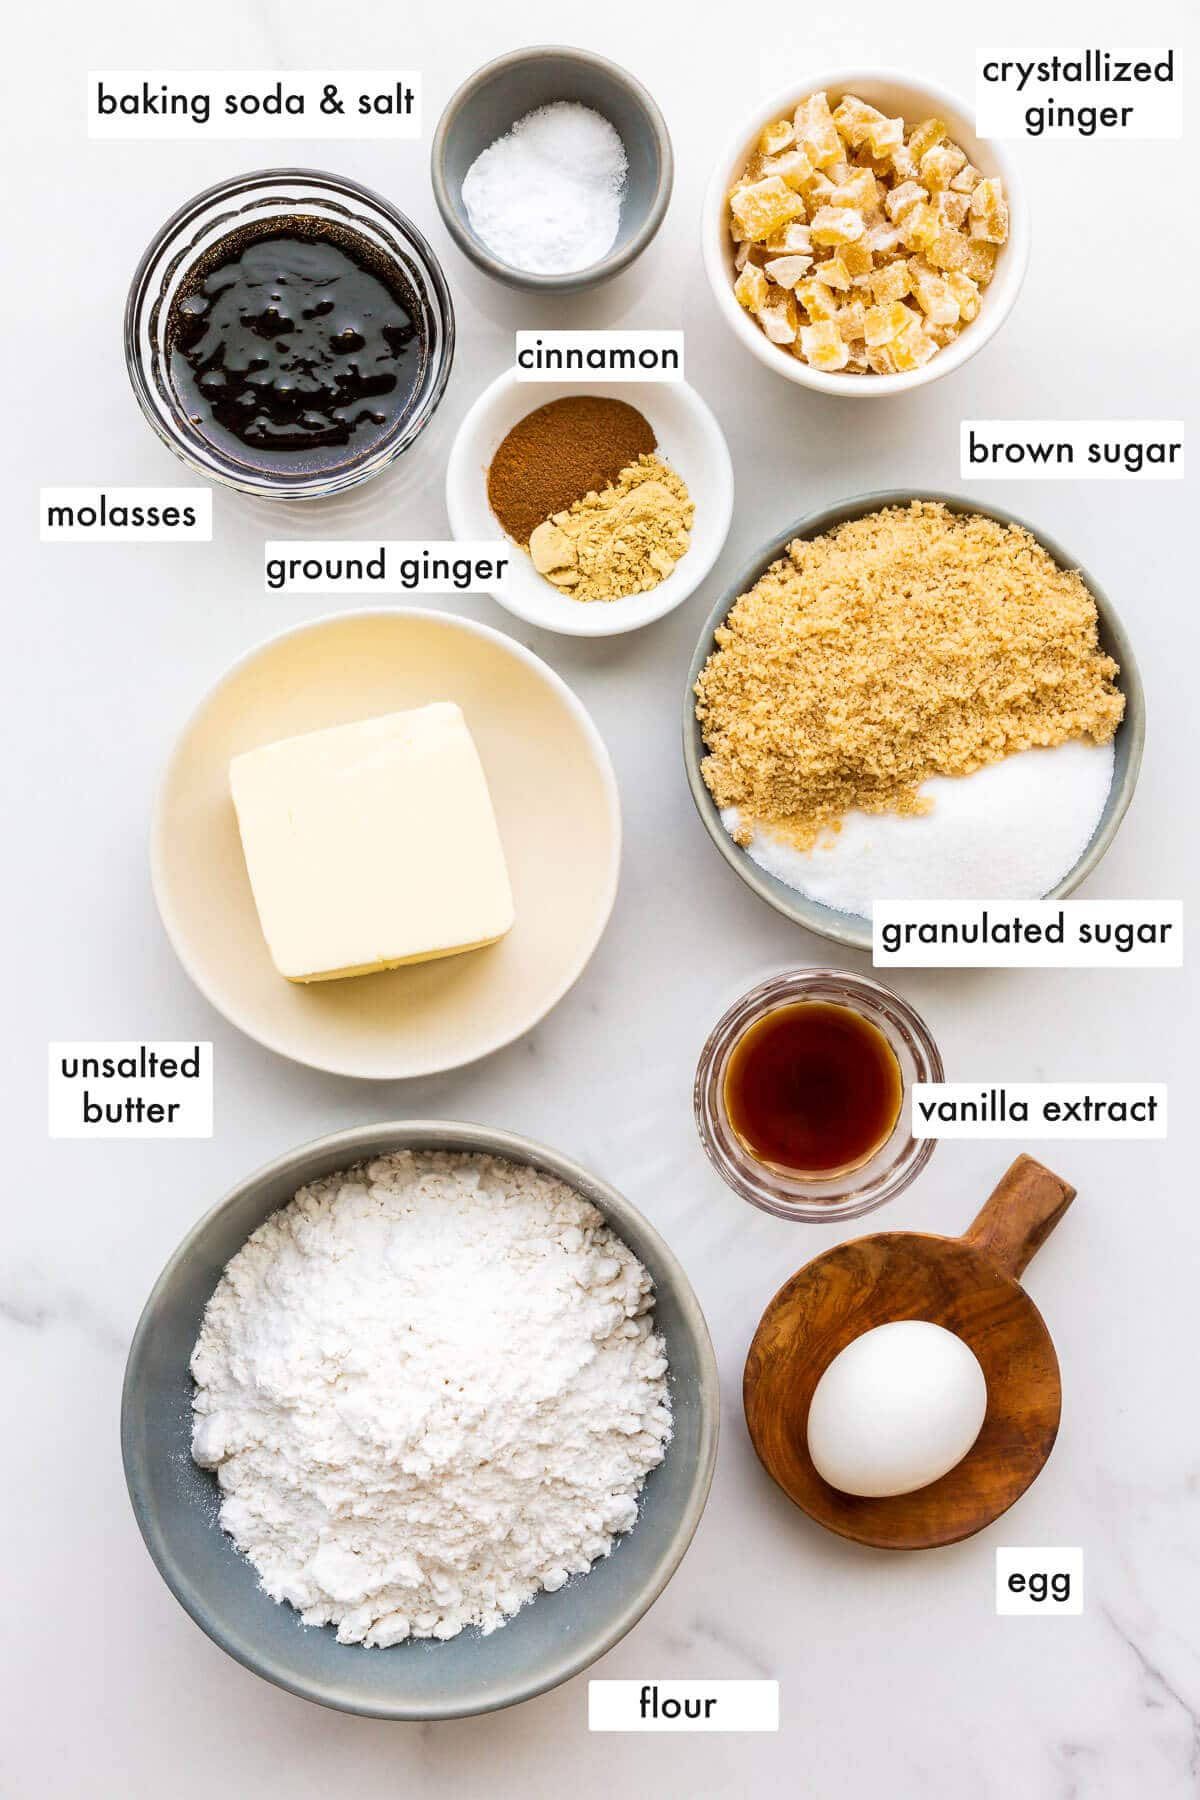 Ingredients to make ginger cookies measured out and ready to be mixed.